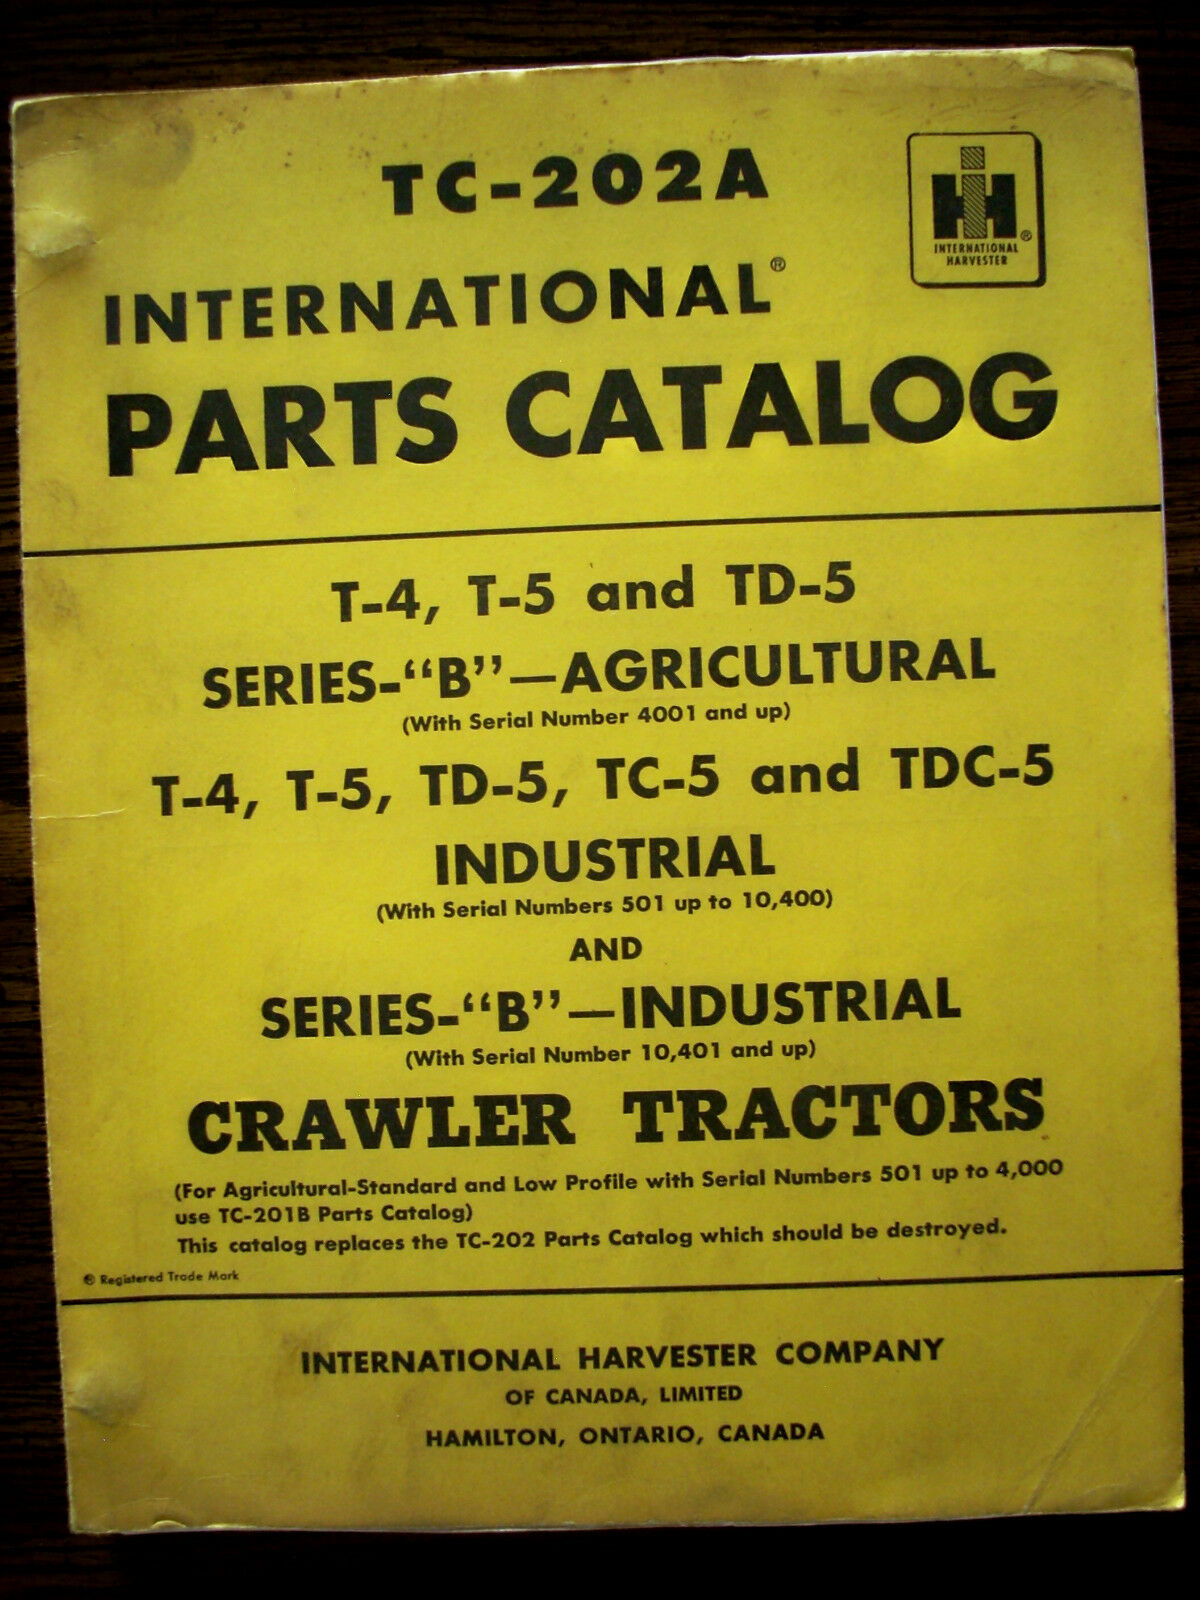 IH Farmall Mccormick International T4 T5 TD5 TC5 TDC5 Crawler Parts Manual  1 of 1Only 1 available See More